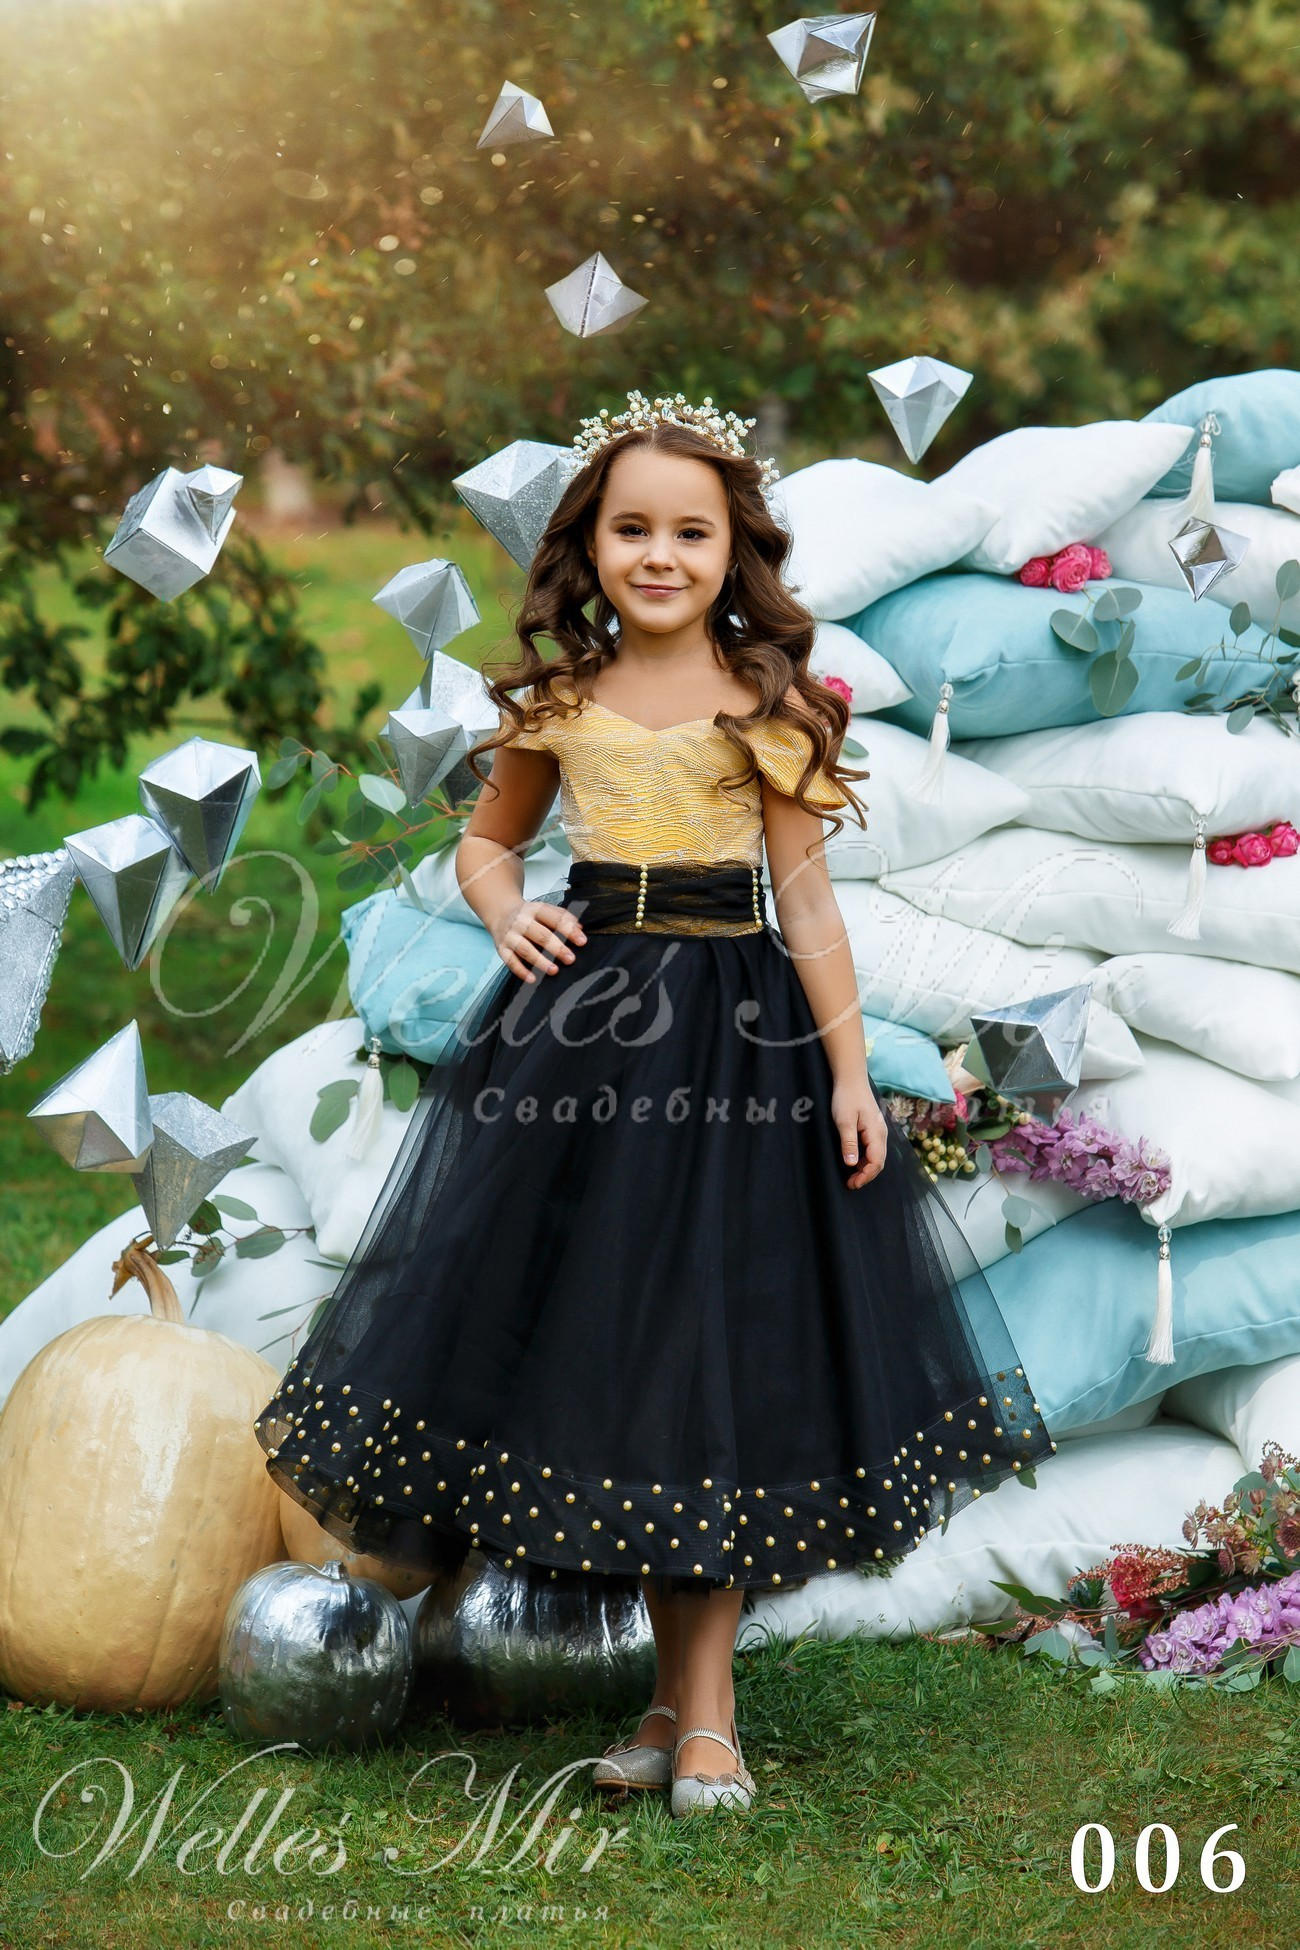 Kids Deluxe Collection 2018 - 006